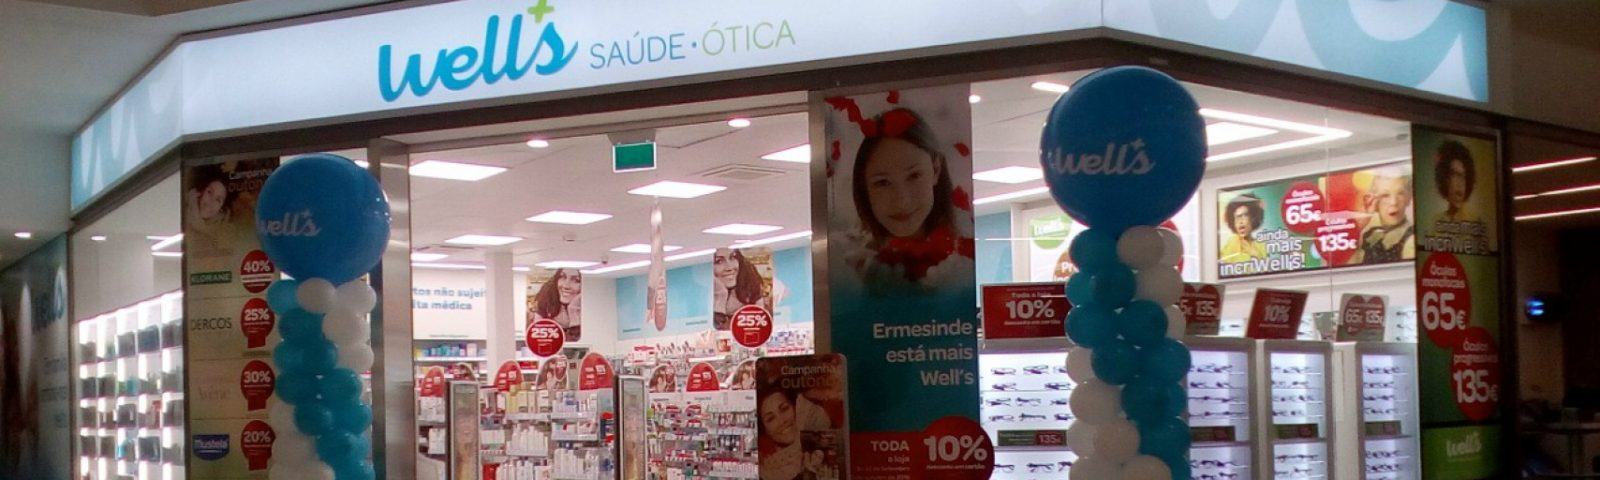 Franchising Well's abre 186ª loja no país